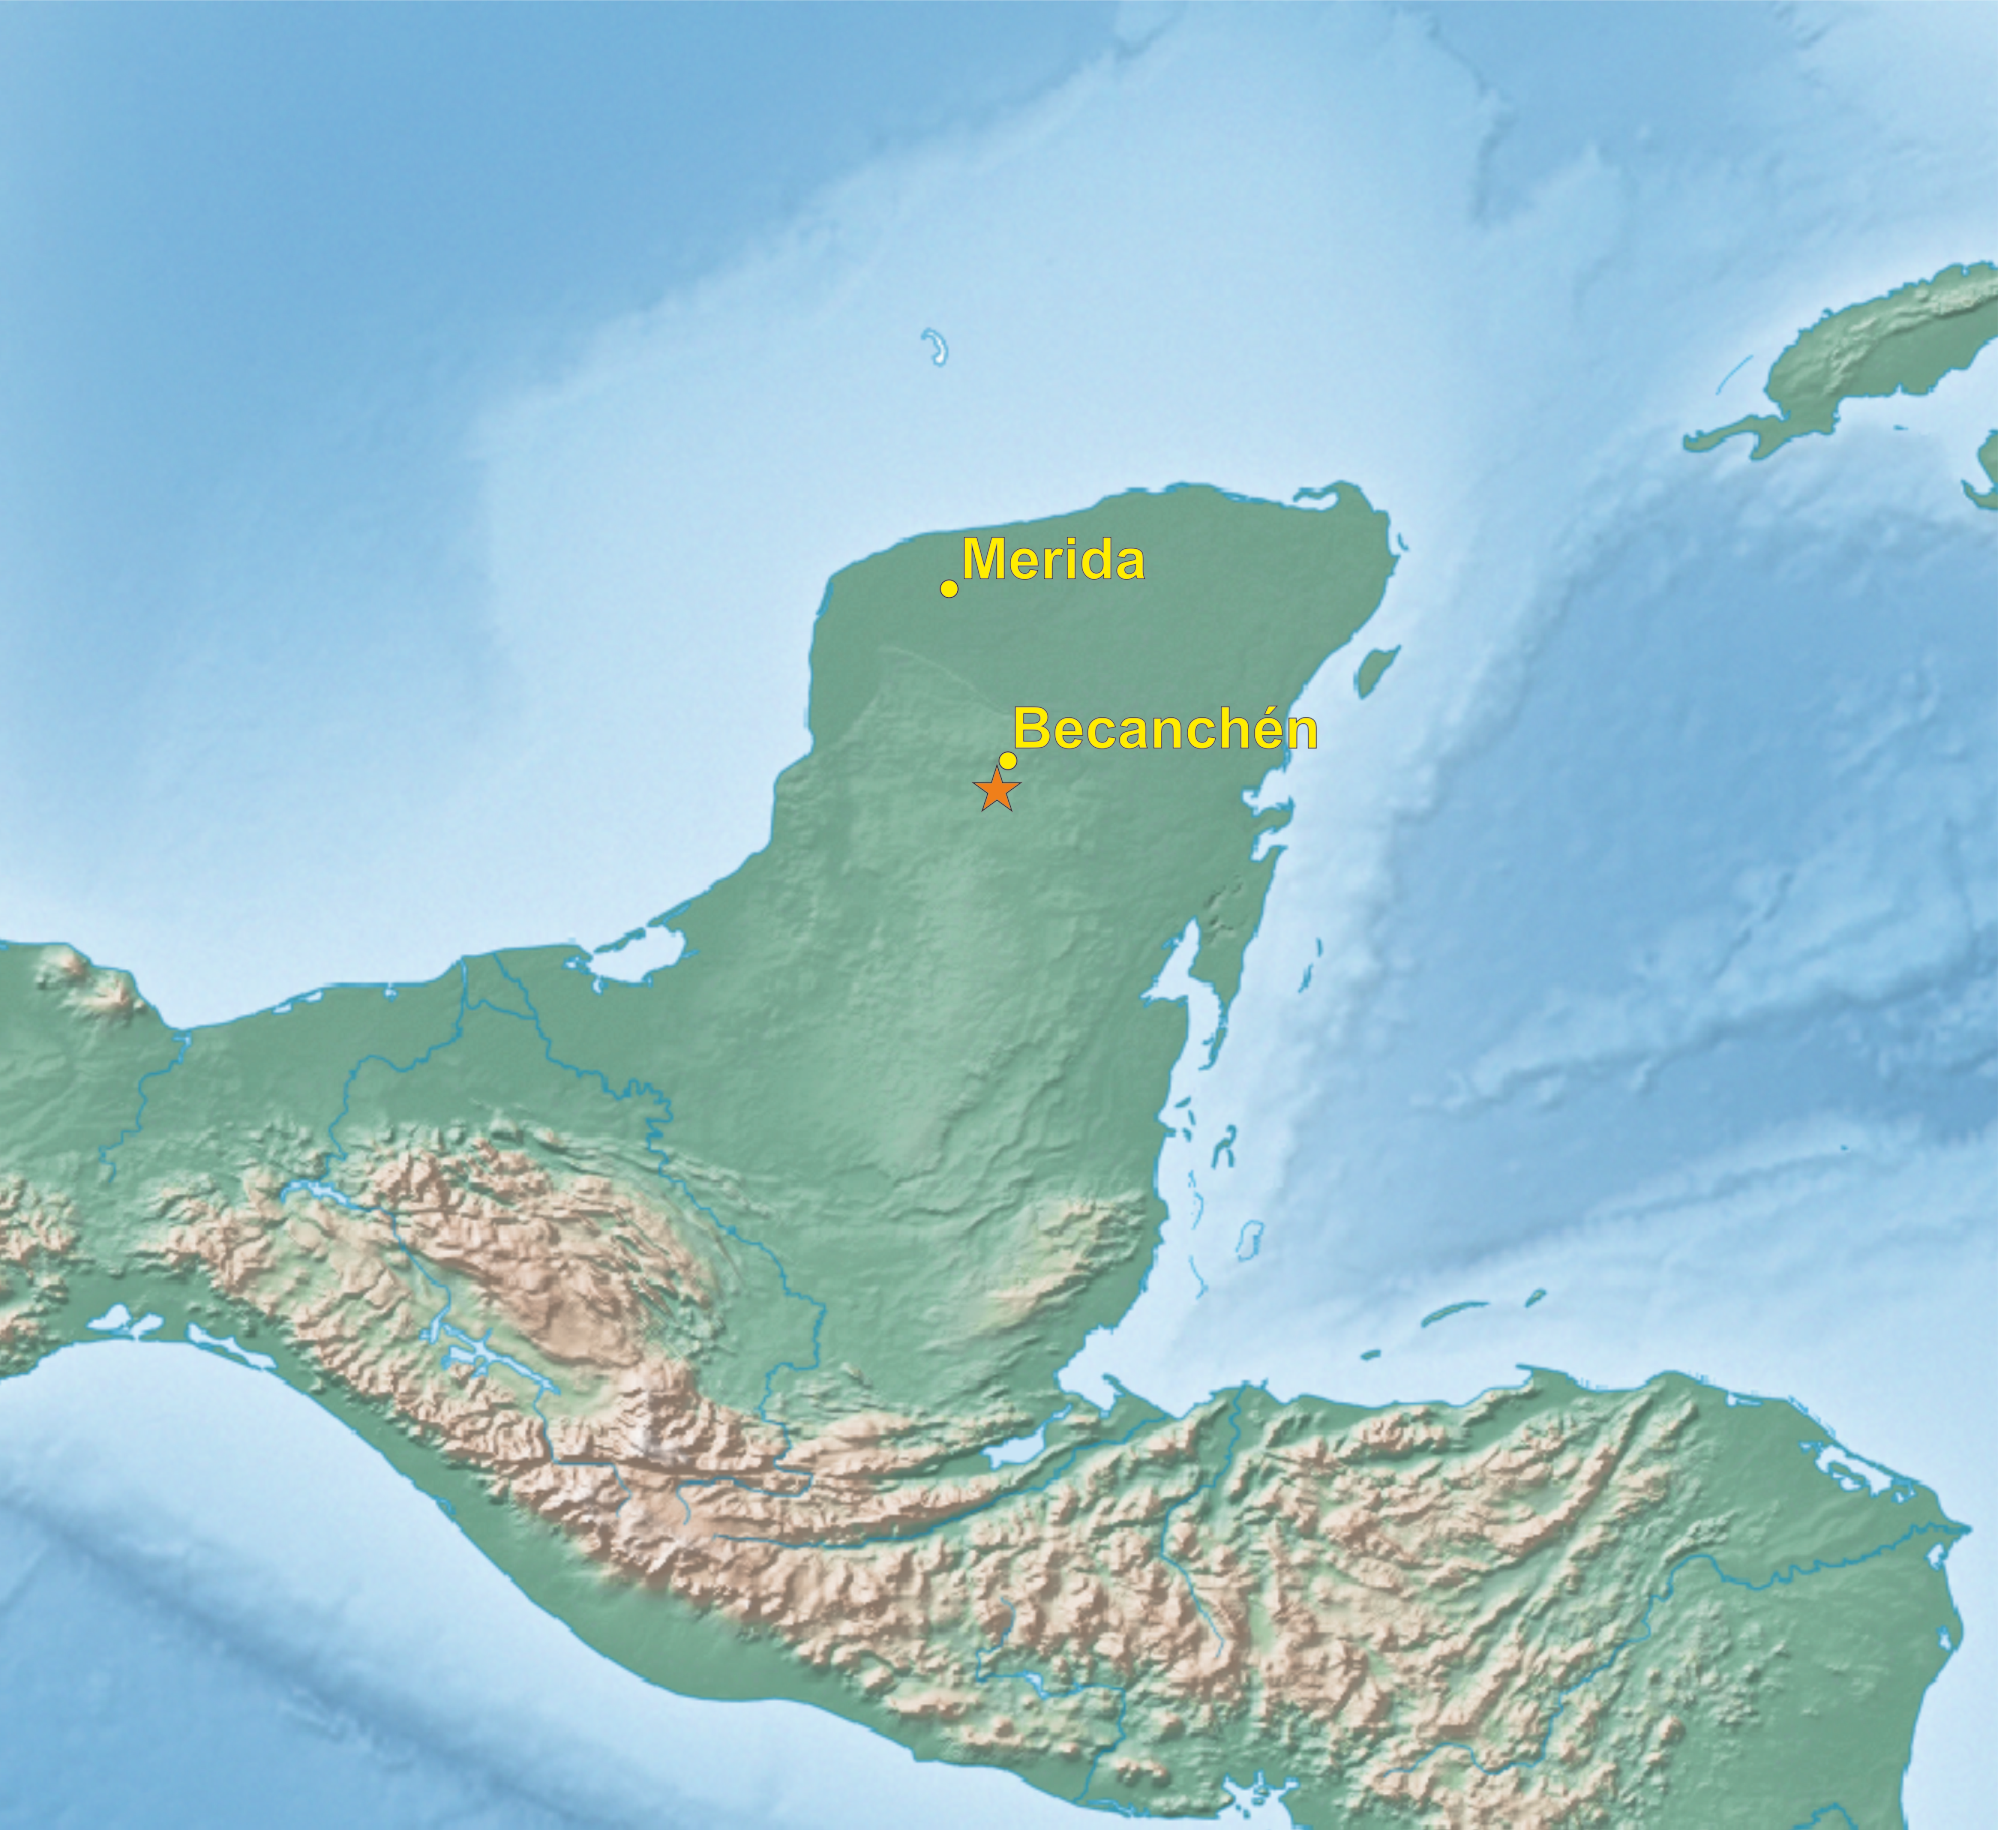 A new parrot taxon from the Yucatn Peninsula Mexicoits position